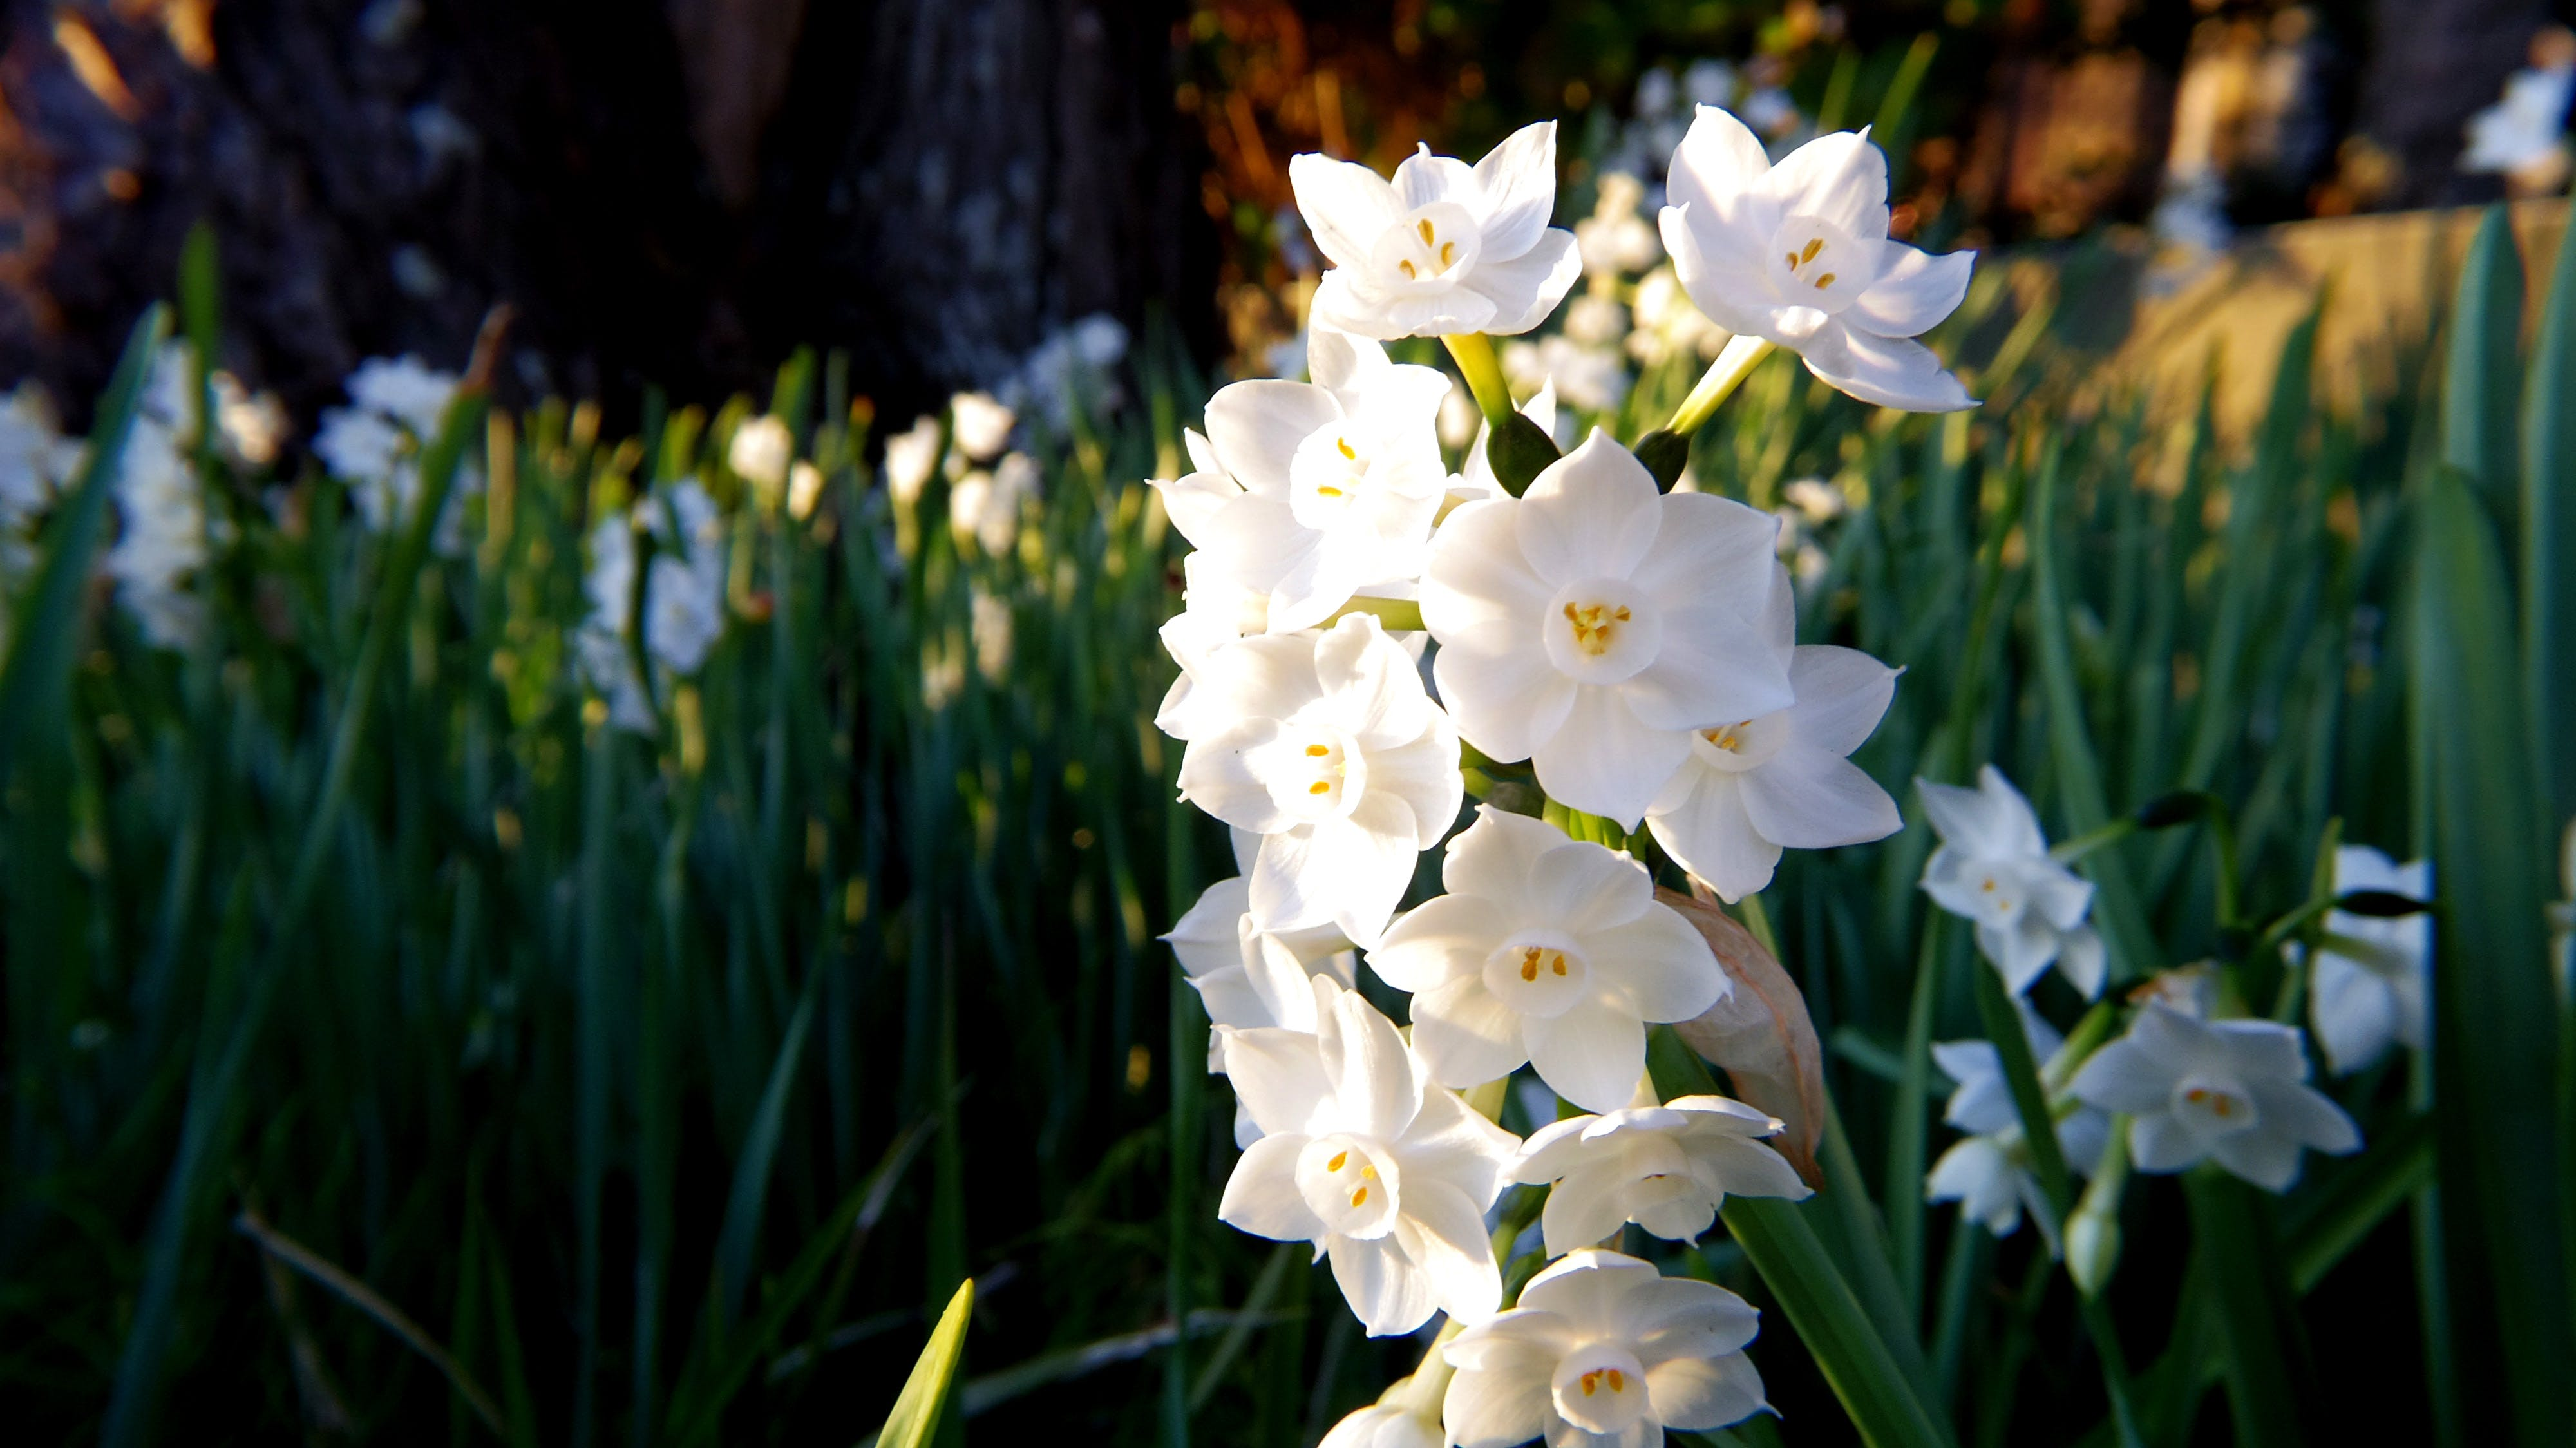 White Daffodil Flowers in Closeup Photography